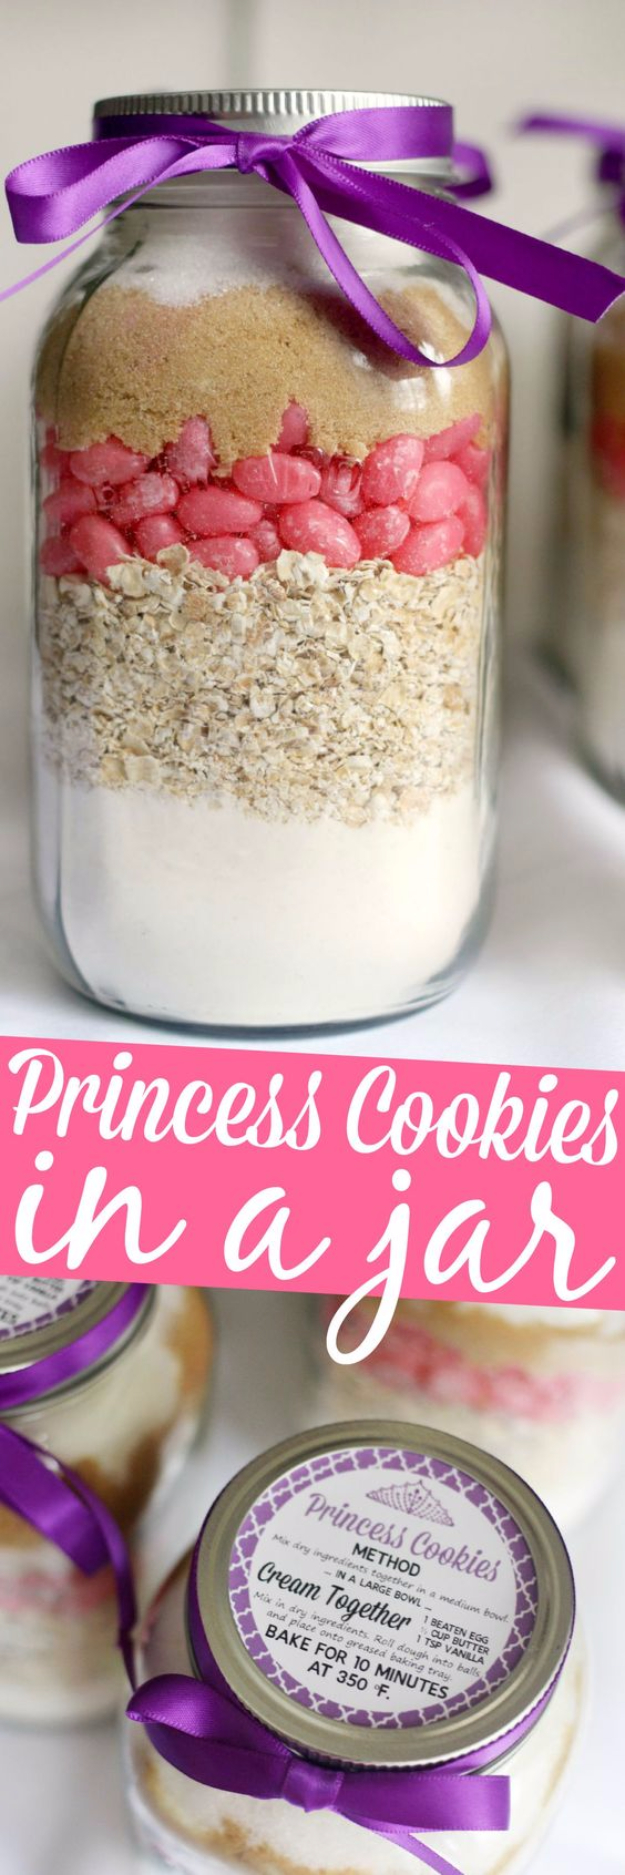 Best Mason Jar Cookies - Princess Cookies In A Jar - Mason Jar Cookie Recipe Mix for Cute Decorated DIY Gifts - Easy Chocolate Chip Recipes, Christmas Presents and Wedding Favors in Mason Jars - Fun Ideas for DIY Parties and Cheap LAst Mintue Gift Ideas for Friends, Family and Neighbors http://diyjoy.com/best-mason-jar-cookie-recipes